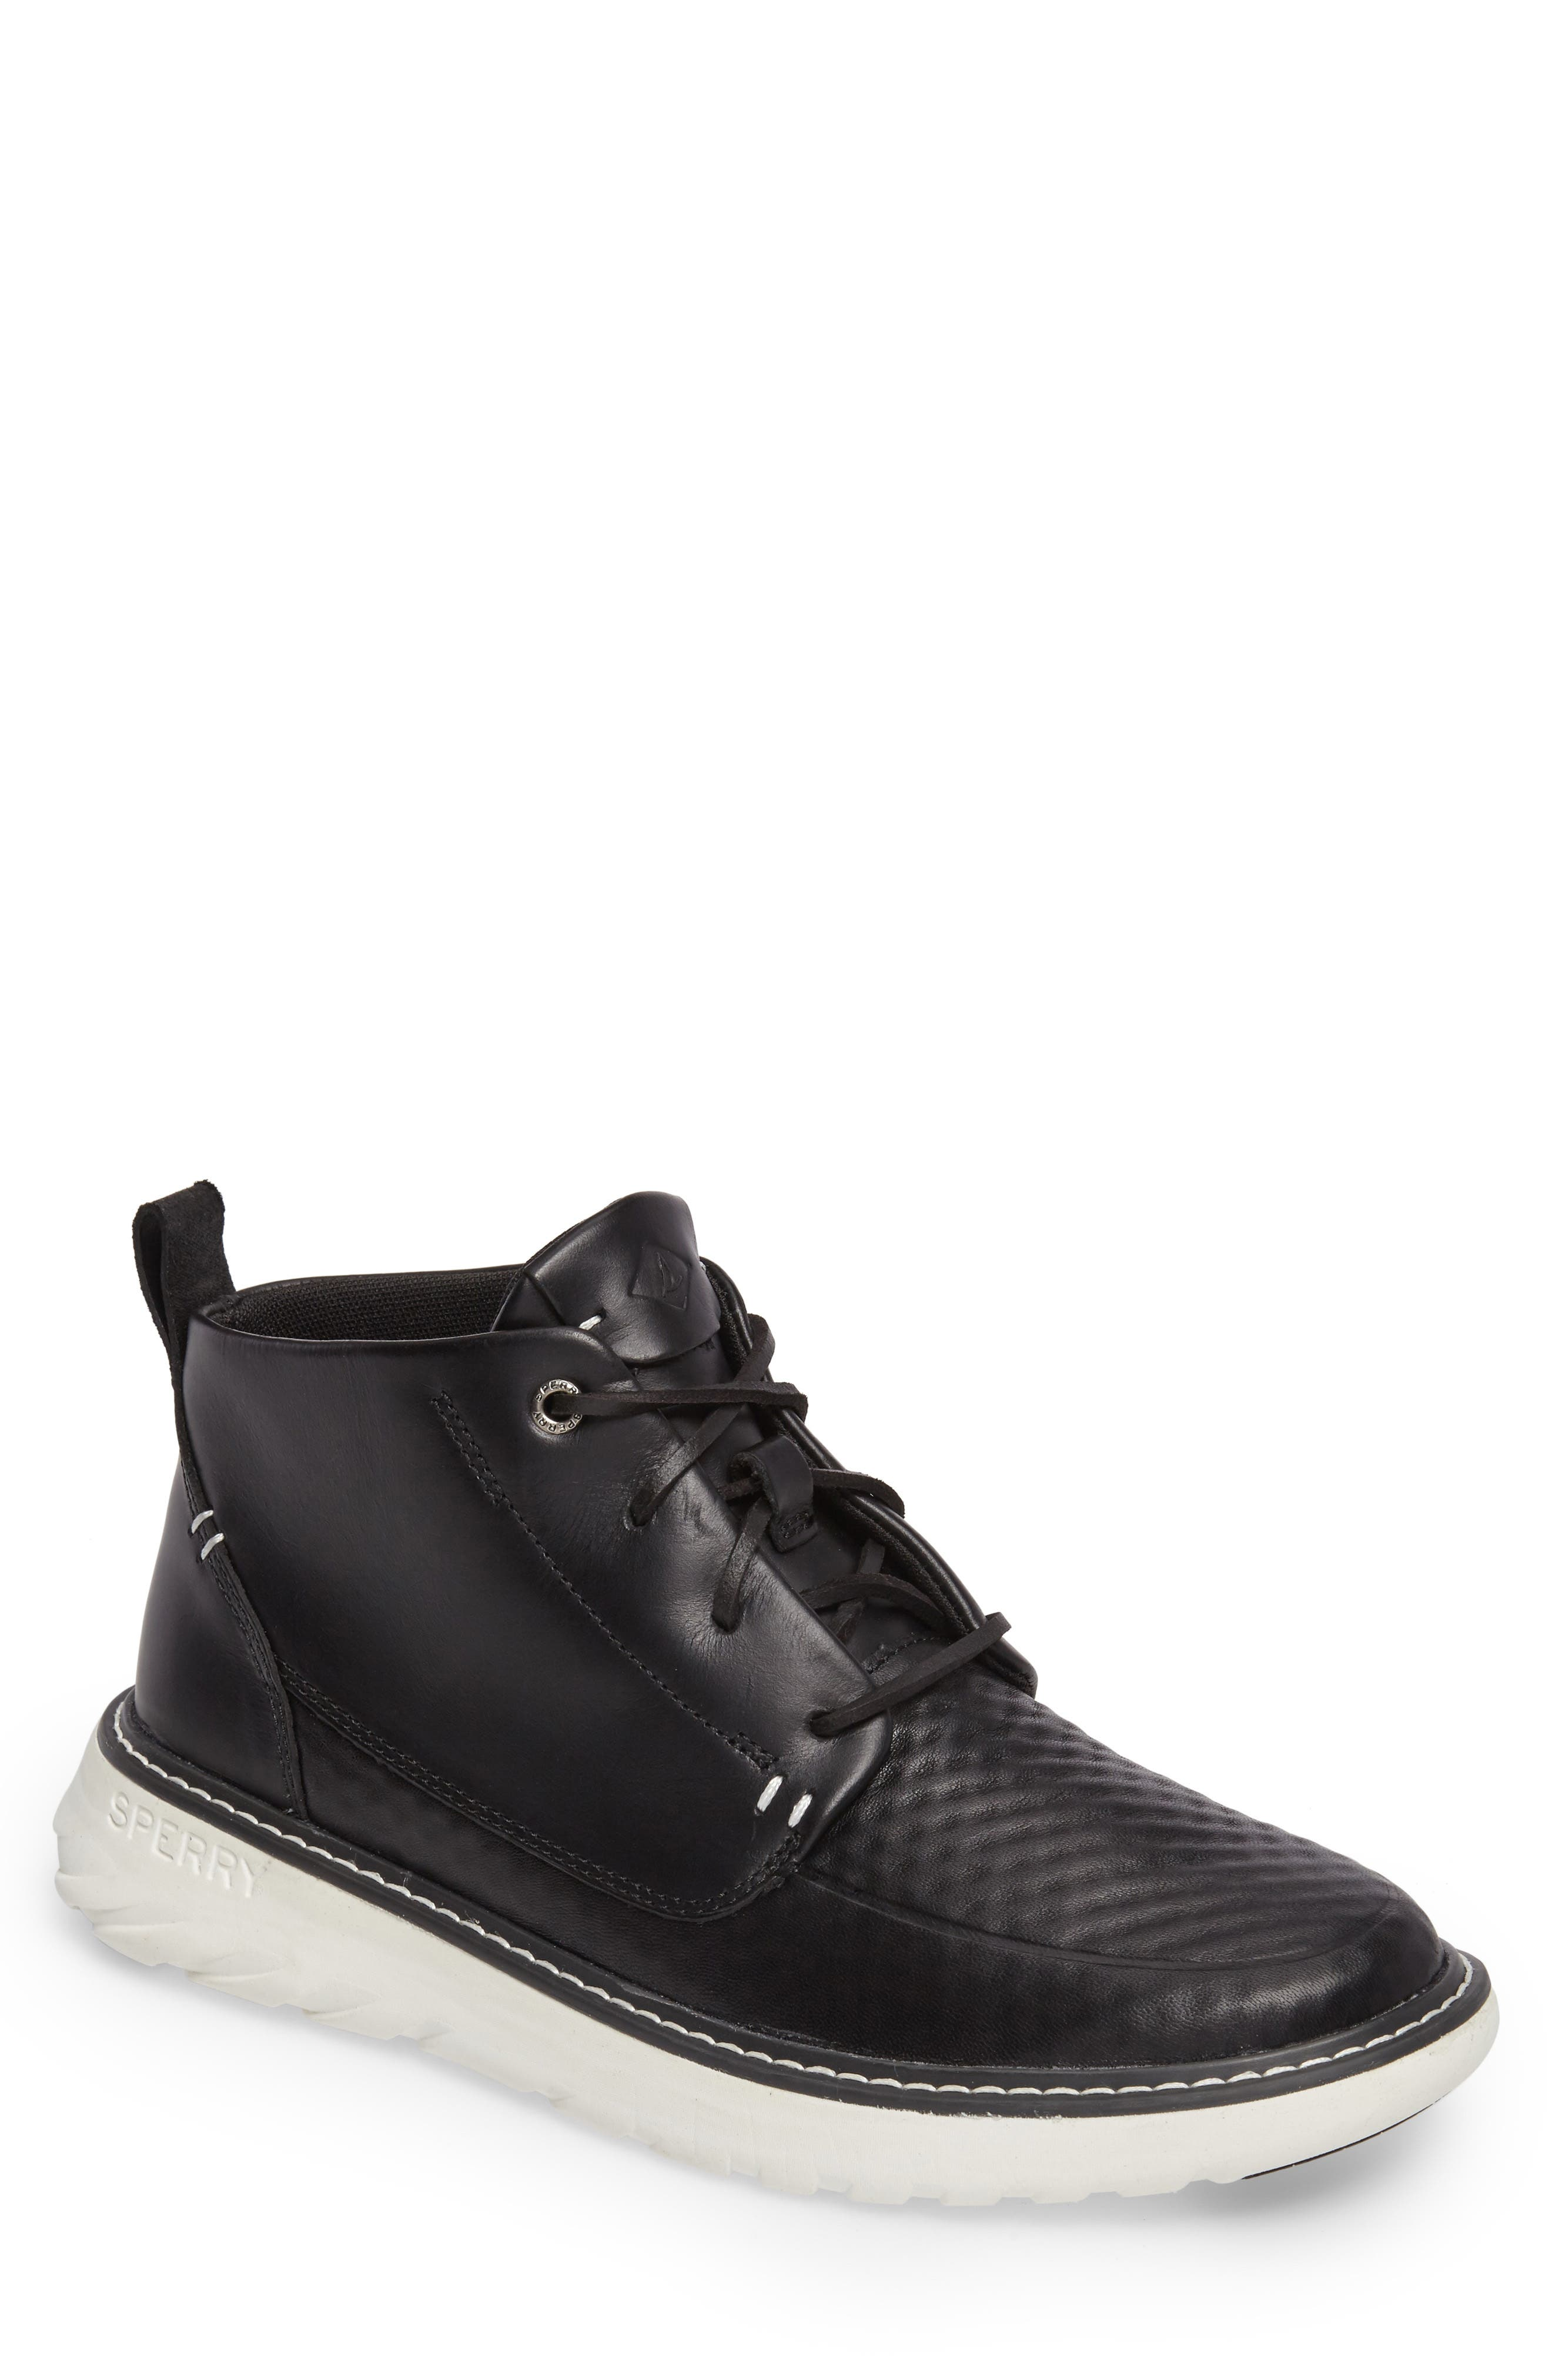 Element Chukka Boot,                         Main,                         color, Black Leather